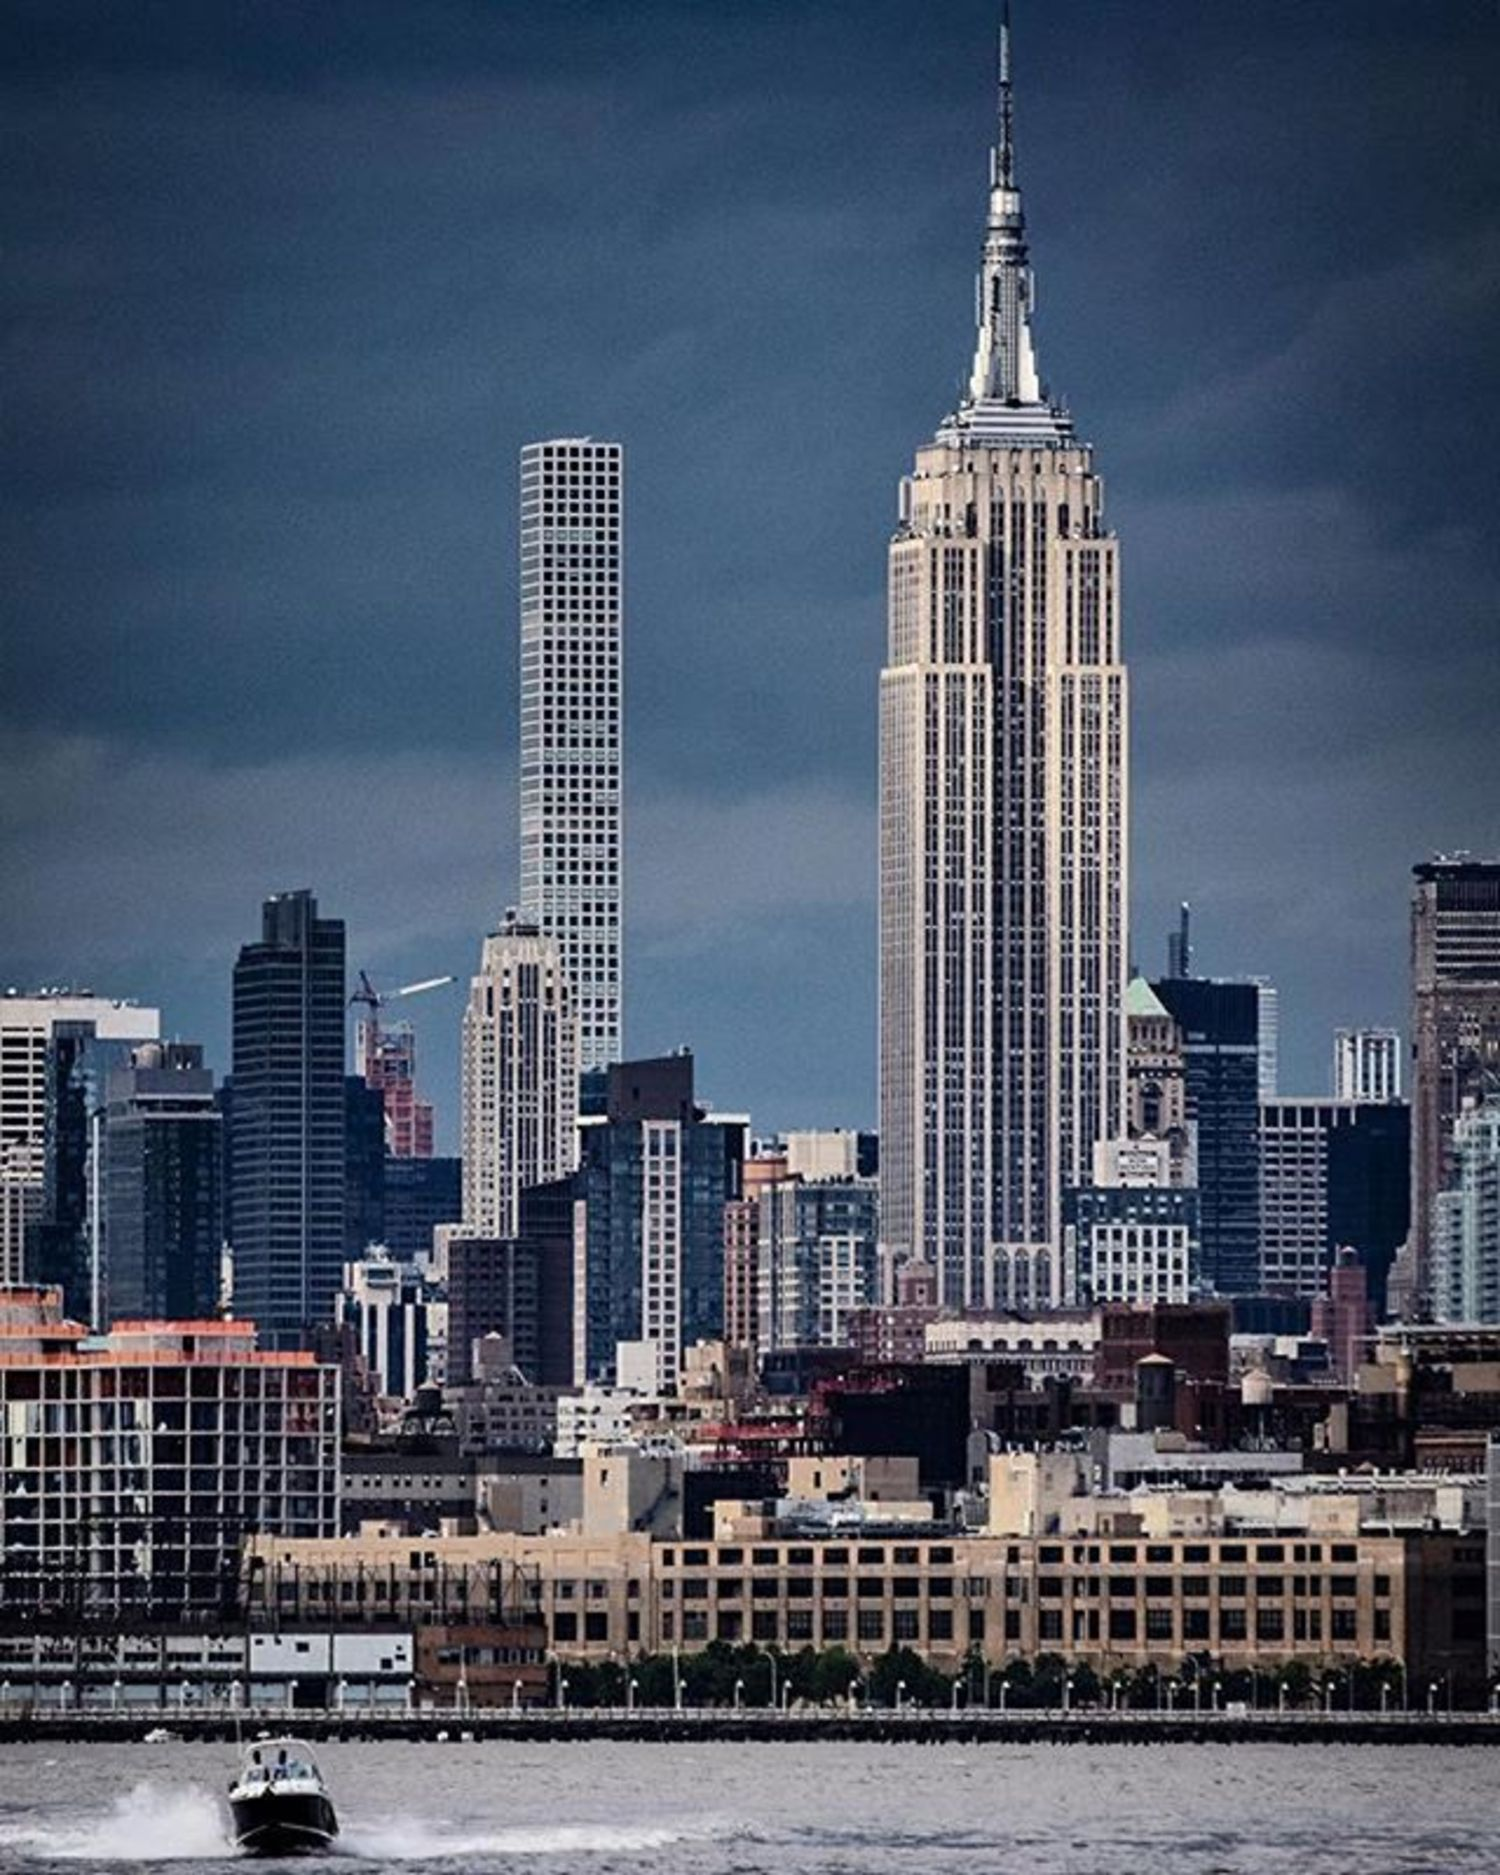 Empire State Building, New York. Photo via @nycfotophun #viewingnyc